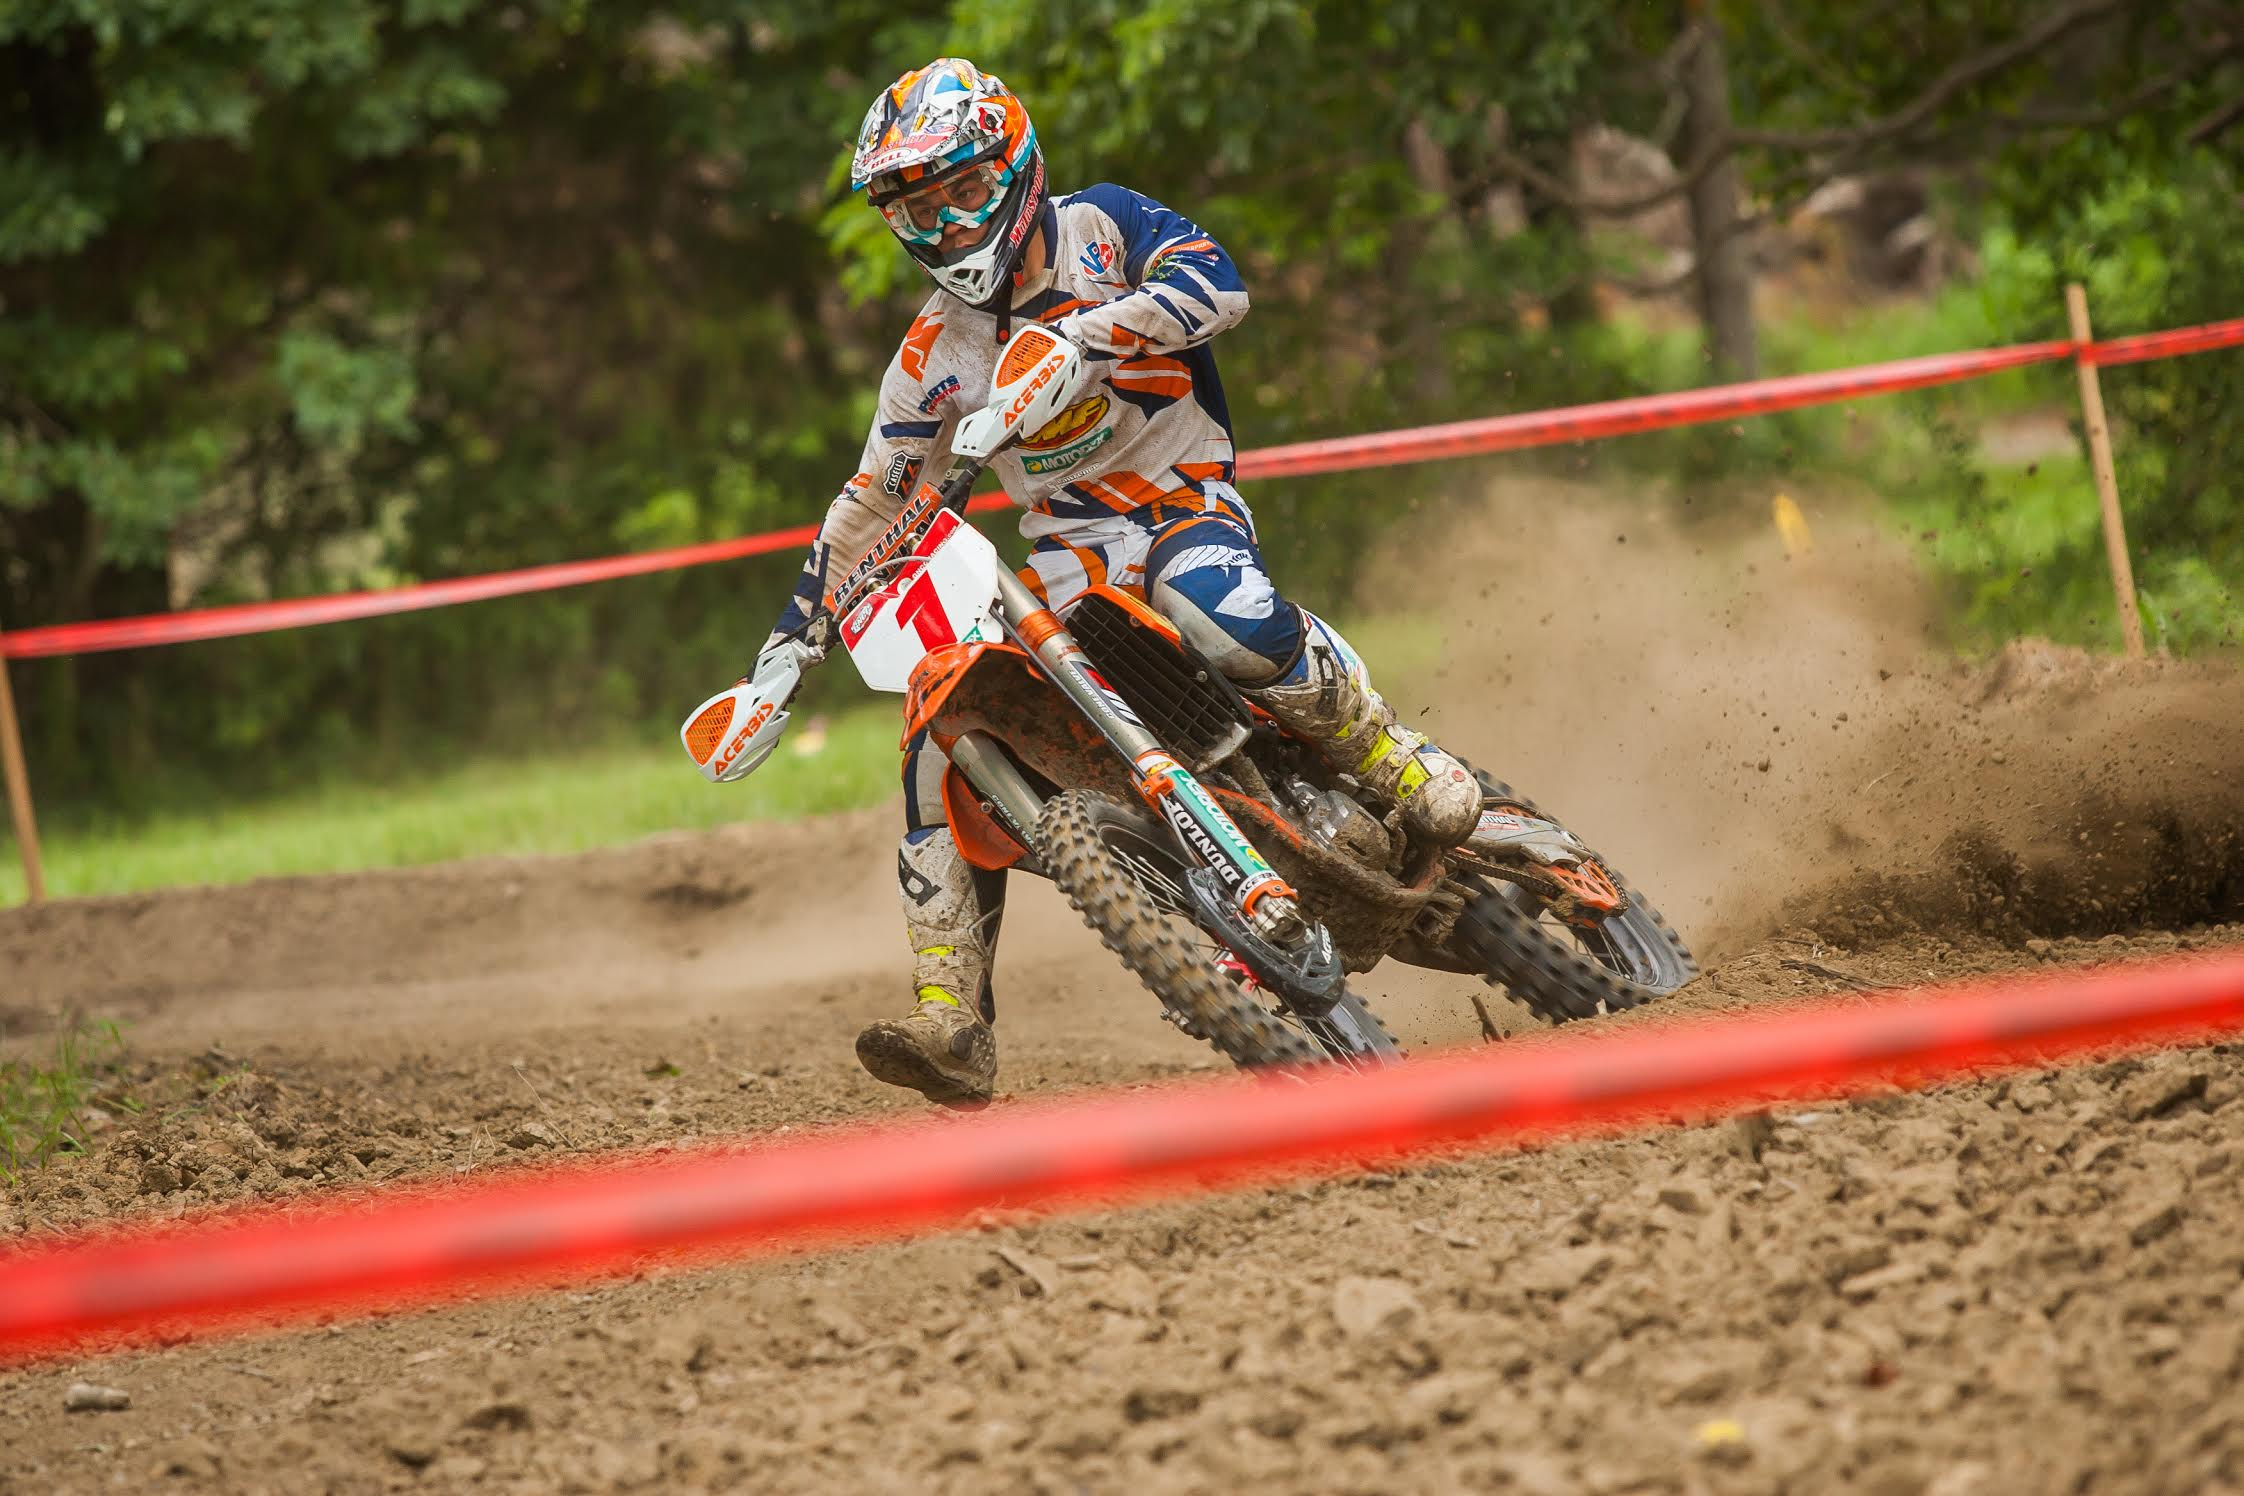 2016 Kenda Full Gas Sprint Enduro Series presented by Moose Racing Schedule Announcement